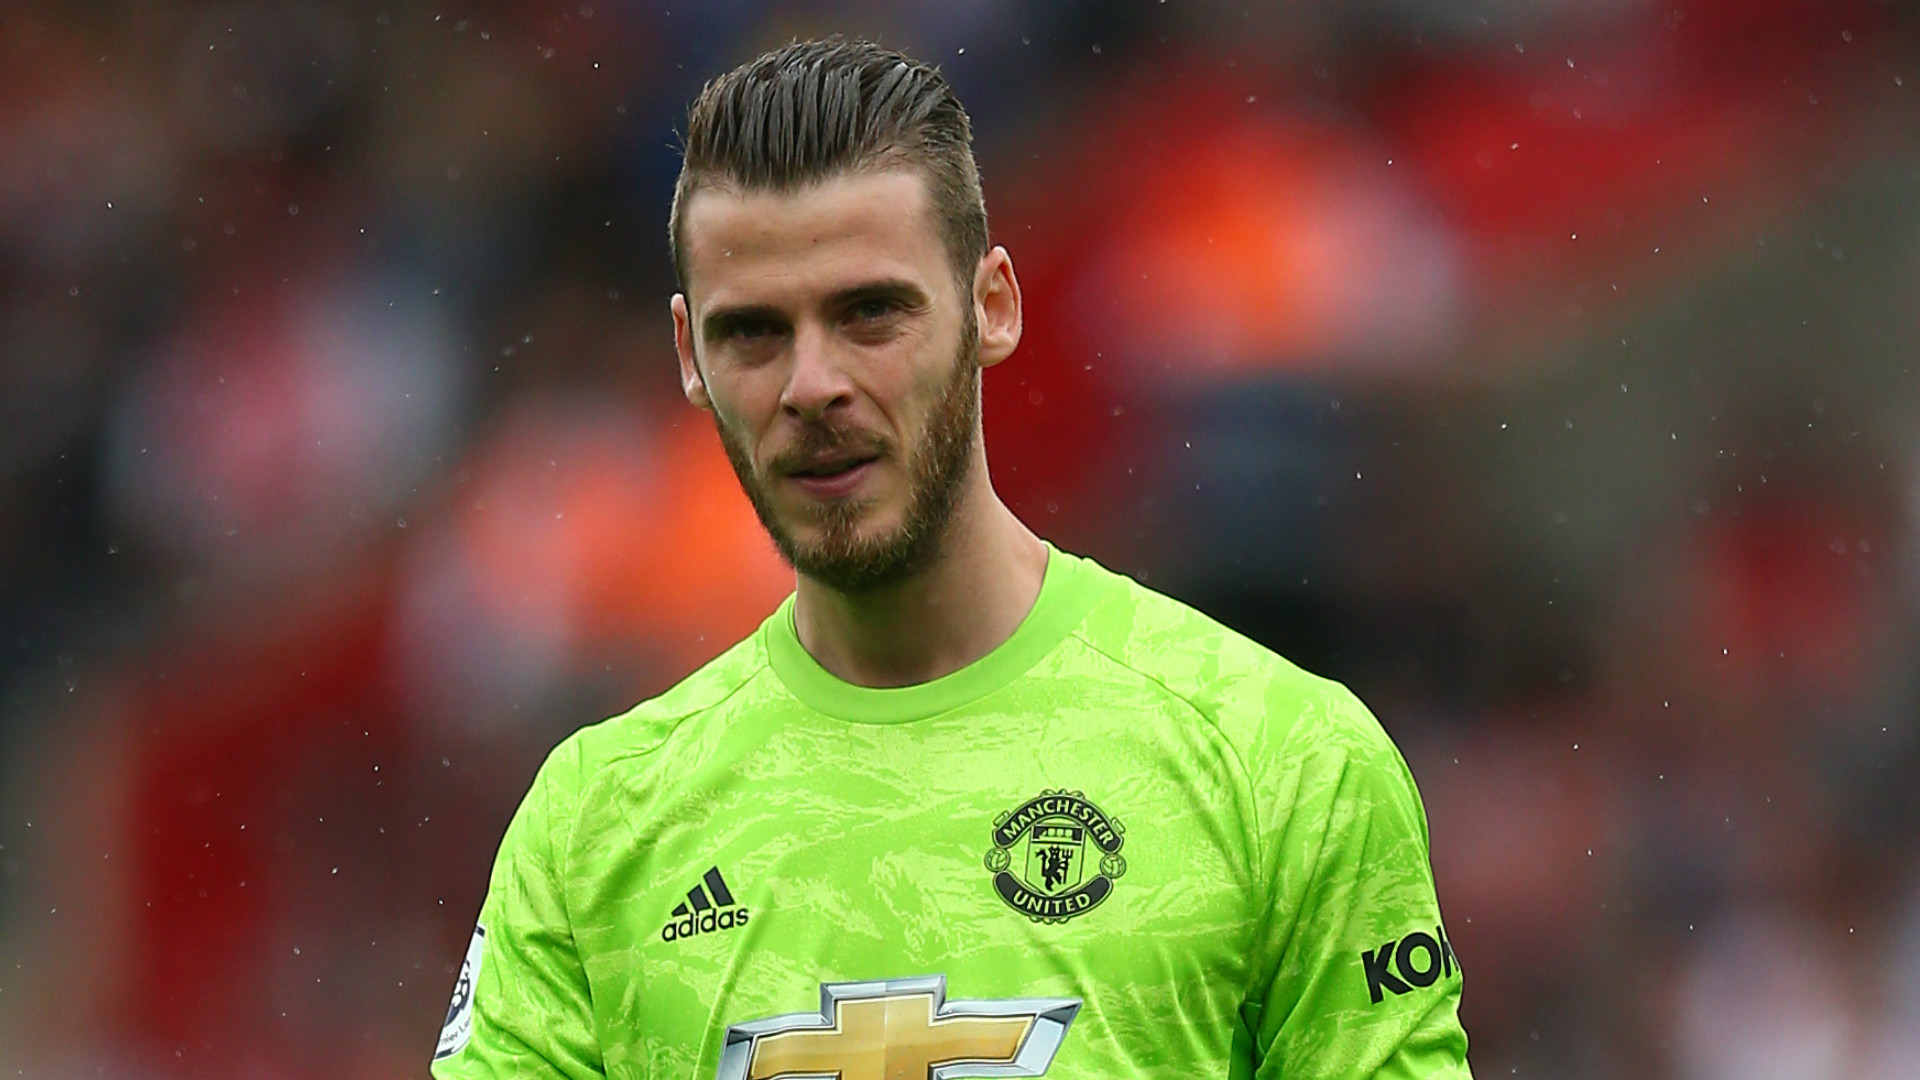 De Gea looks disillusioned at Man Utd' – Exit unlikely but mind ...